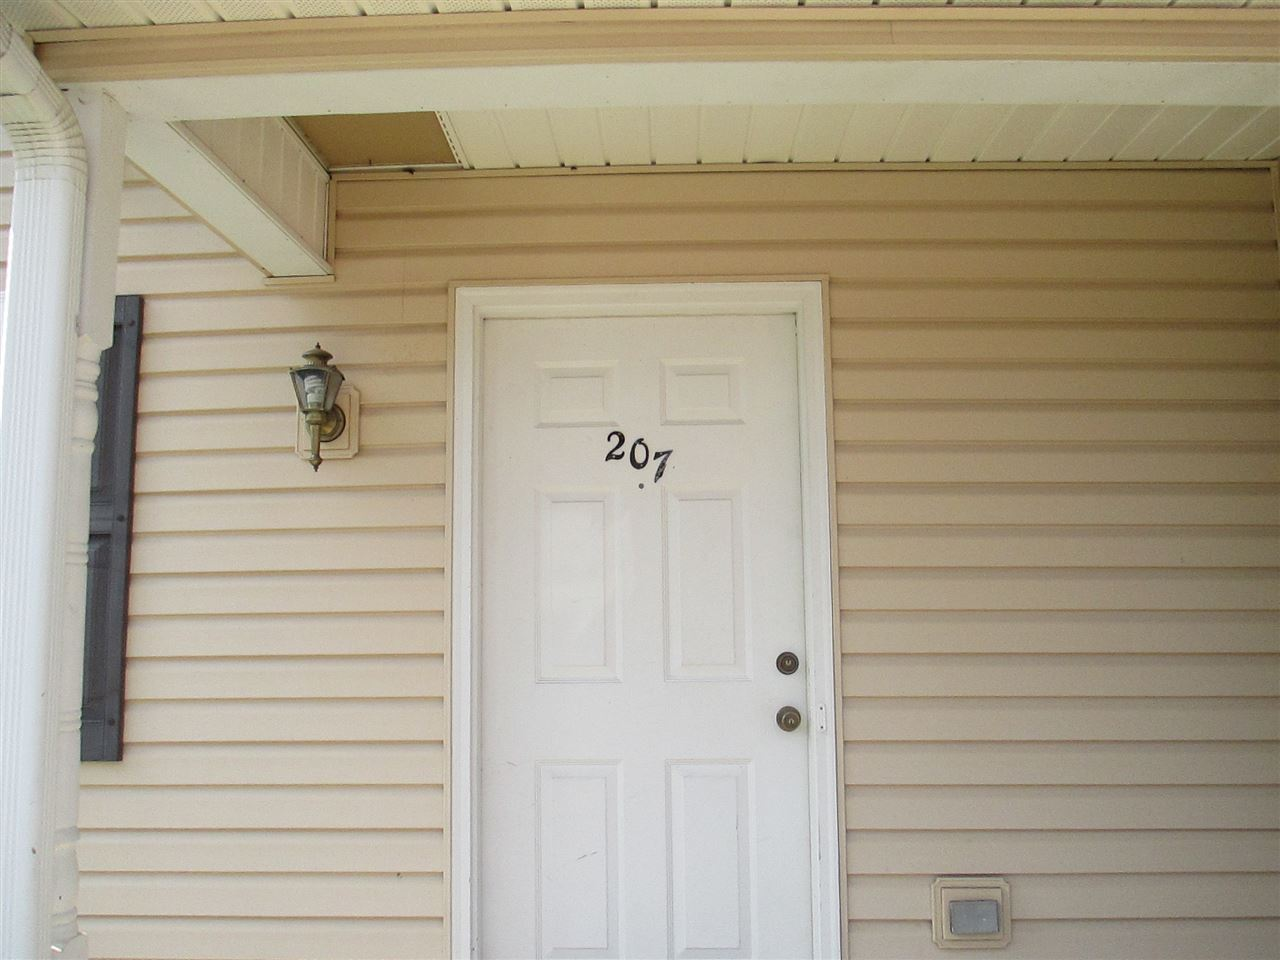 Rental Homes for Rent, ListingId:32805023, location: 207 BOGGS STREET Clemson 29631